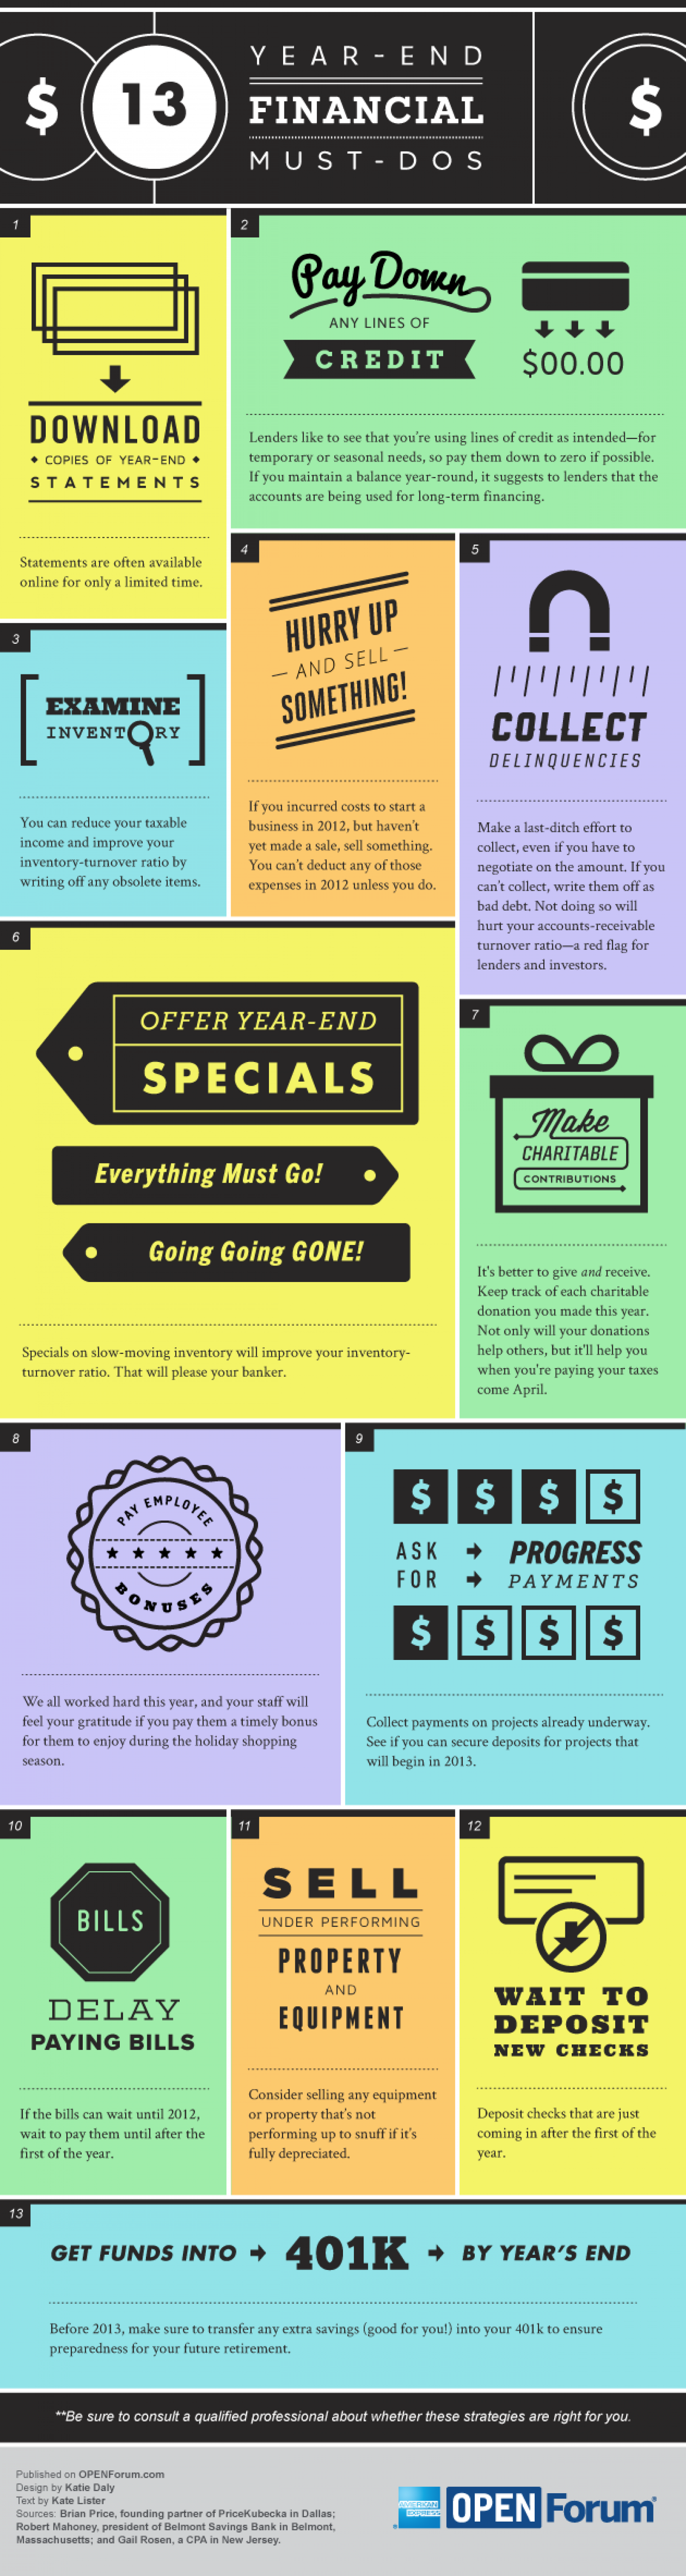 13 Year-End Financial Must-Dos Infographic